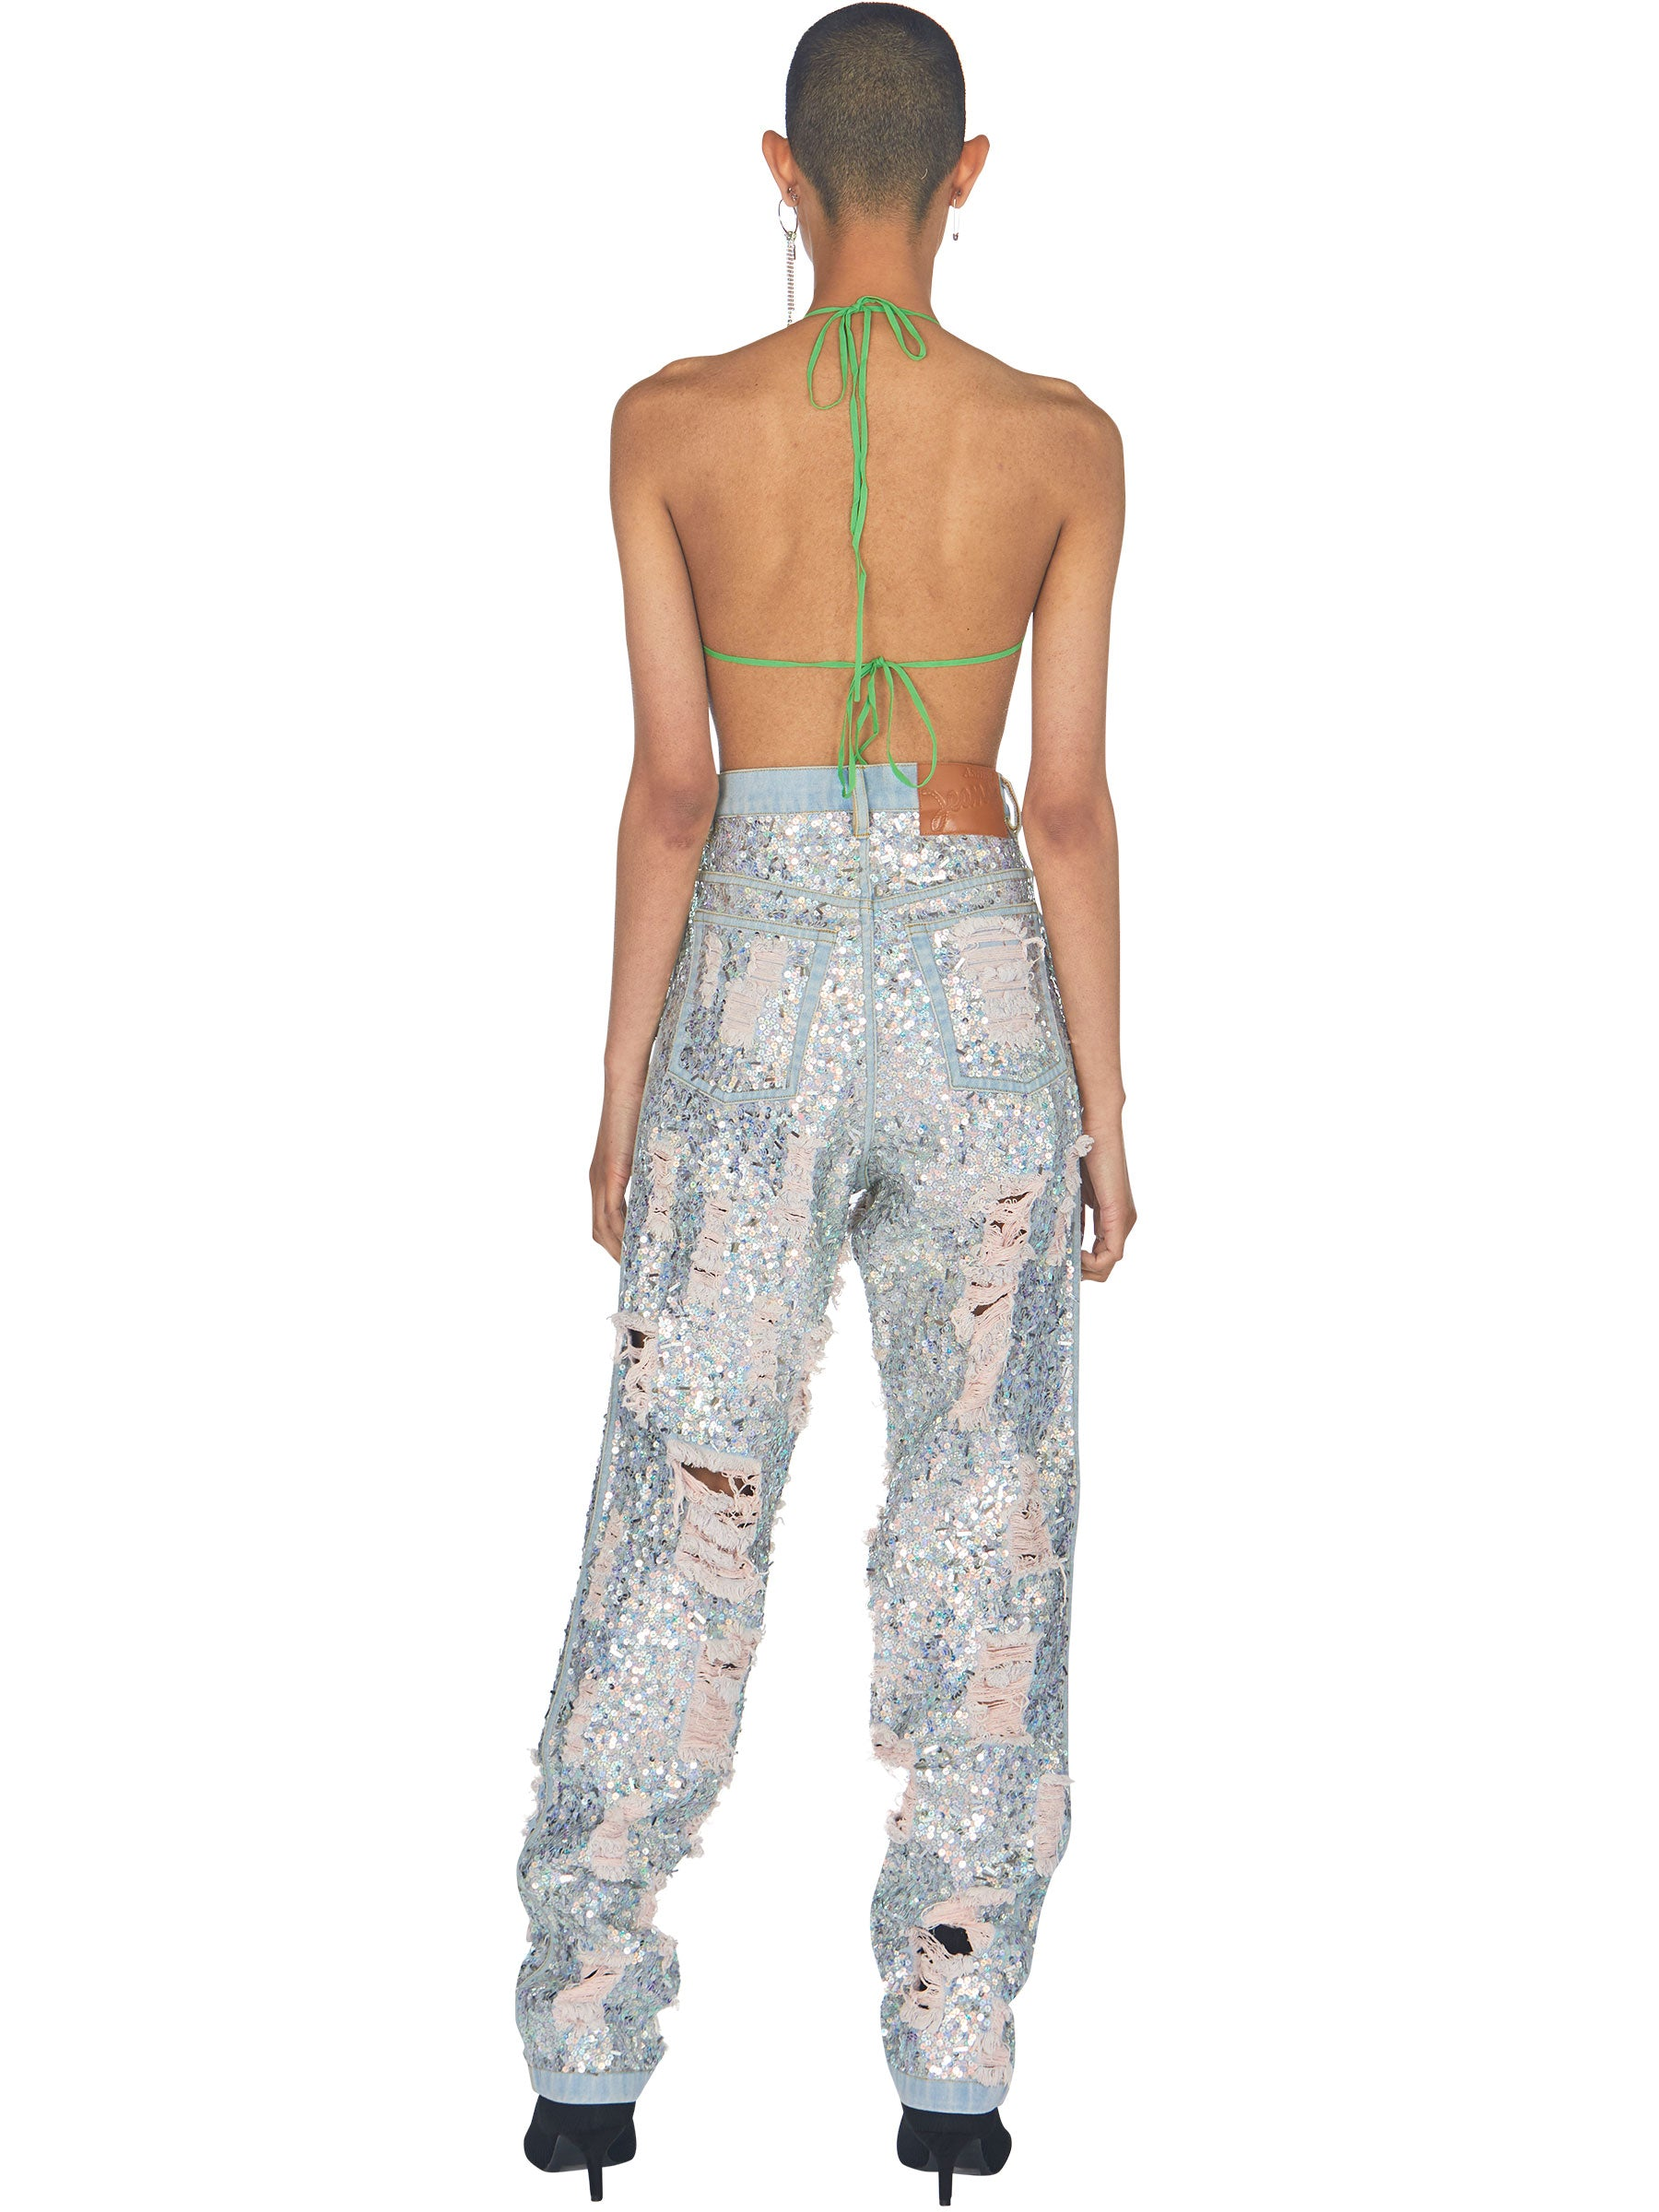 odd92 Ashish Ripped Sequin Jeans Spring/Summer 2019 - 5